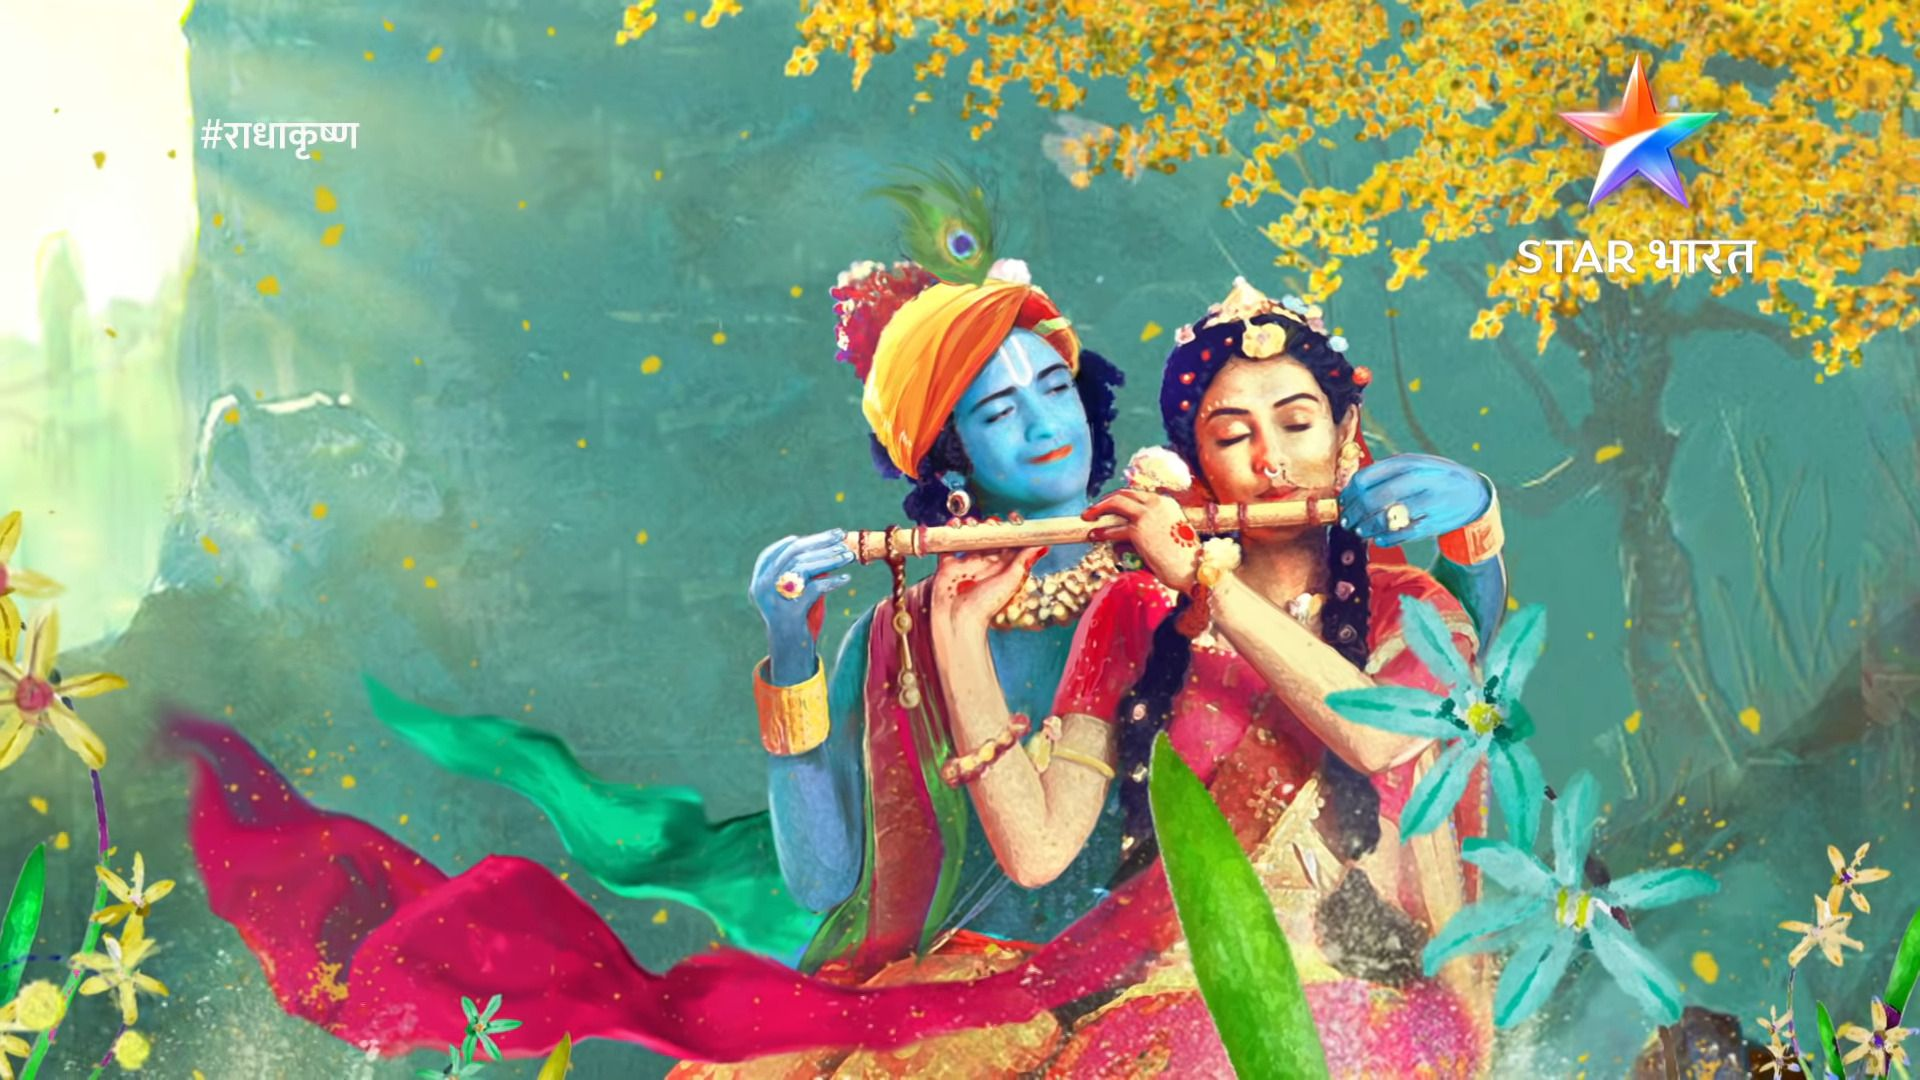 Radha Krishna Star Bharat Serial Hd Wallpapers 1080p Krishna Radha Painting Radha Krishna Wallpaper Krishna Images